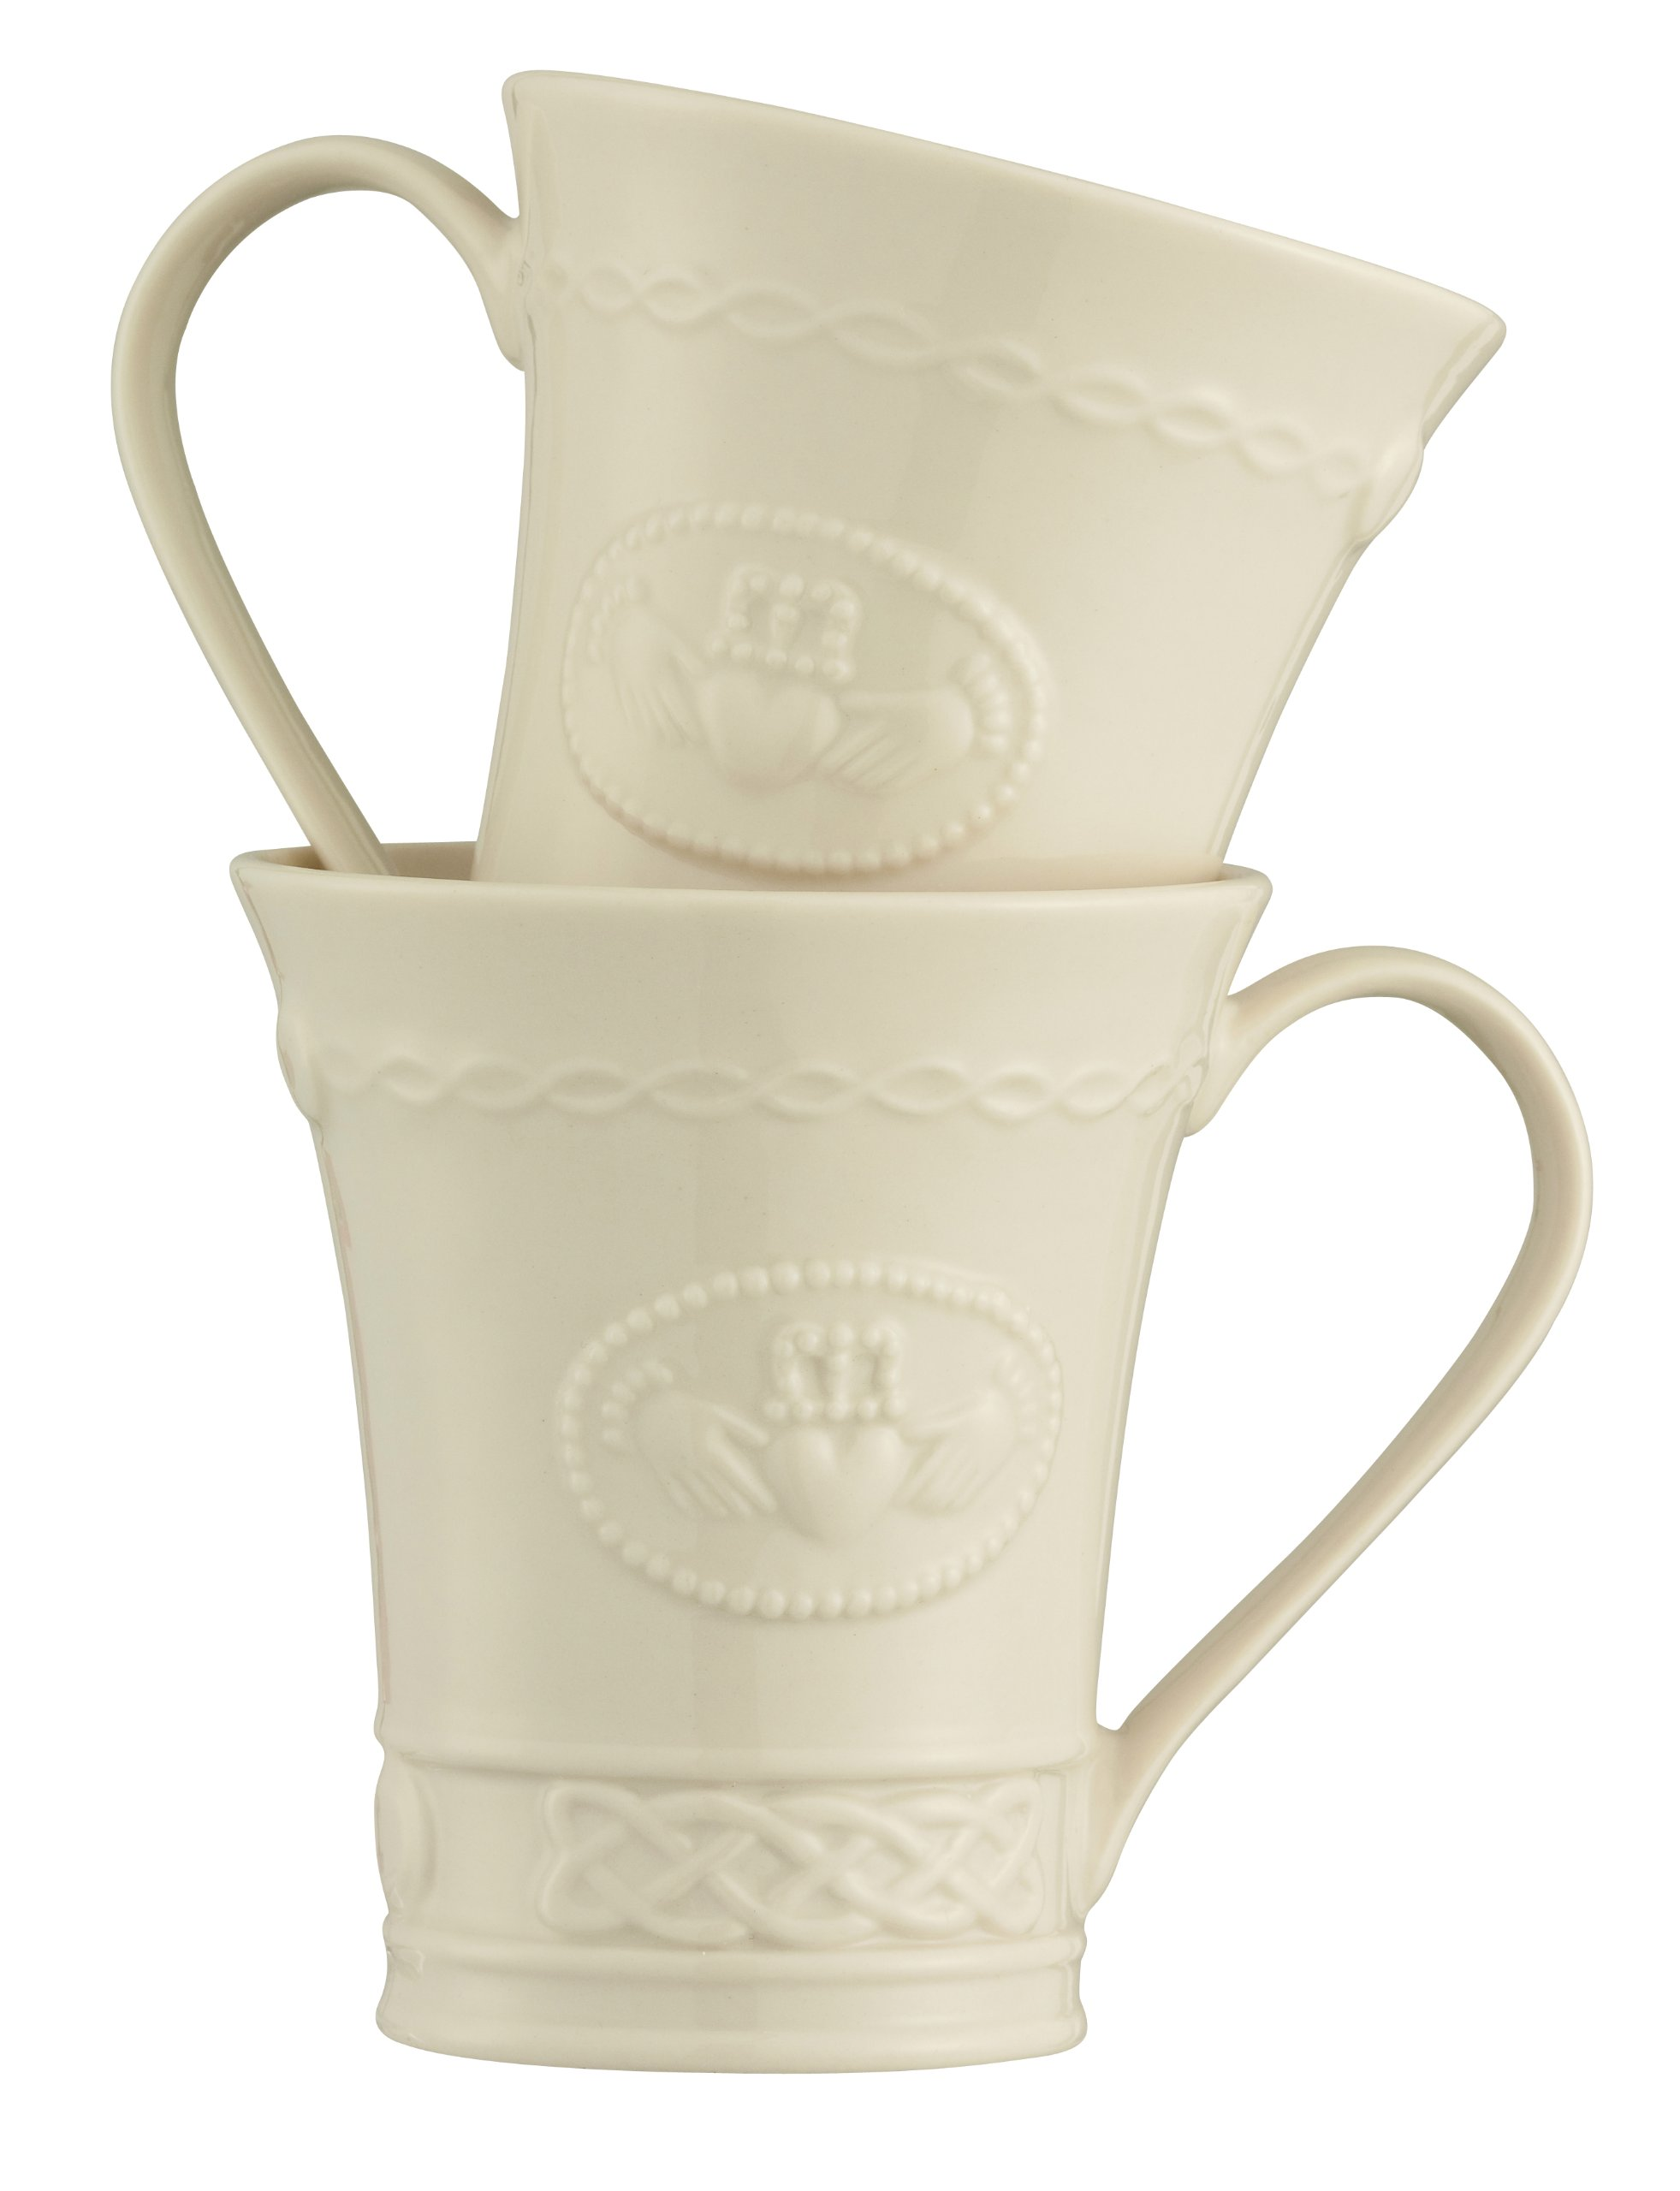 Belleek Group 4131 Claddagh Mug, 10-Ounce, Ivory, Set of 2